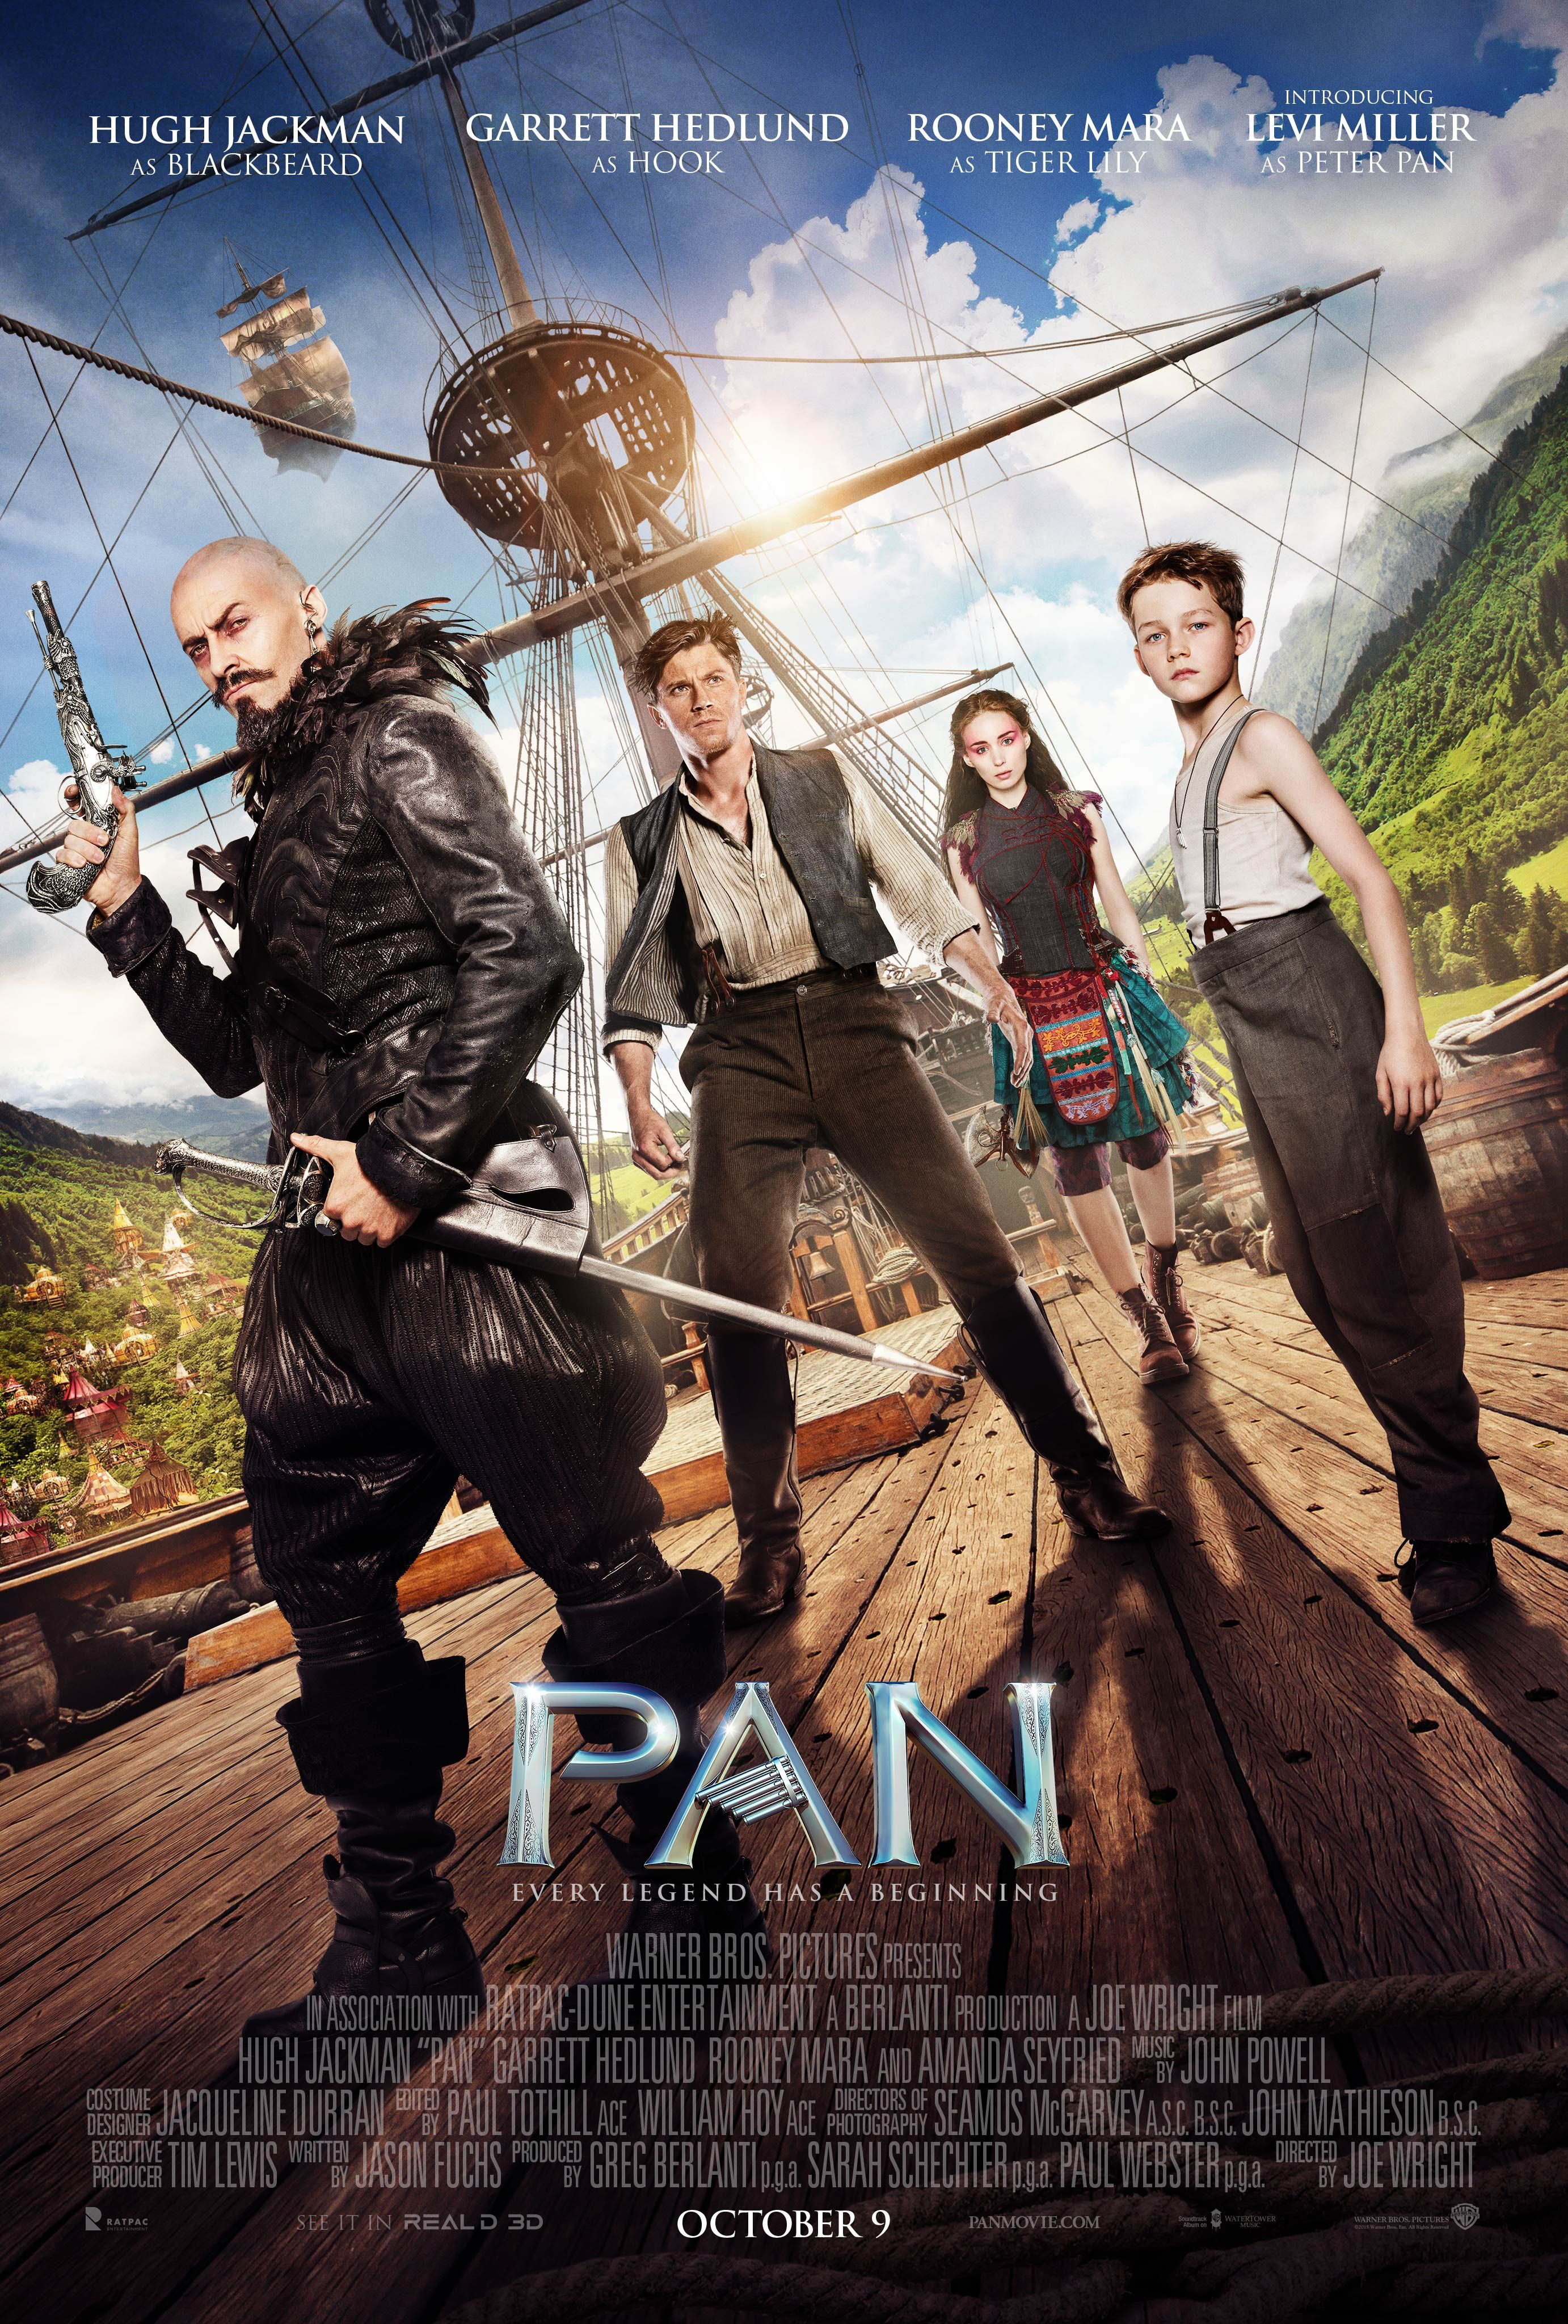 Pan Character Posters Feature Hugh Jackman And Levi Miller